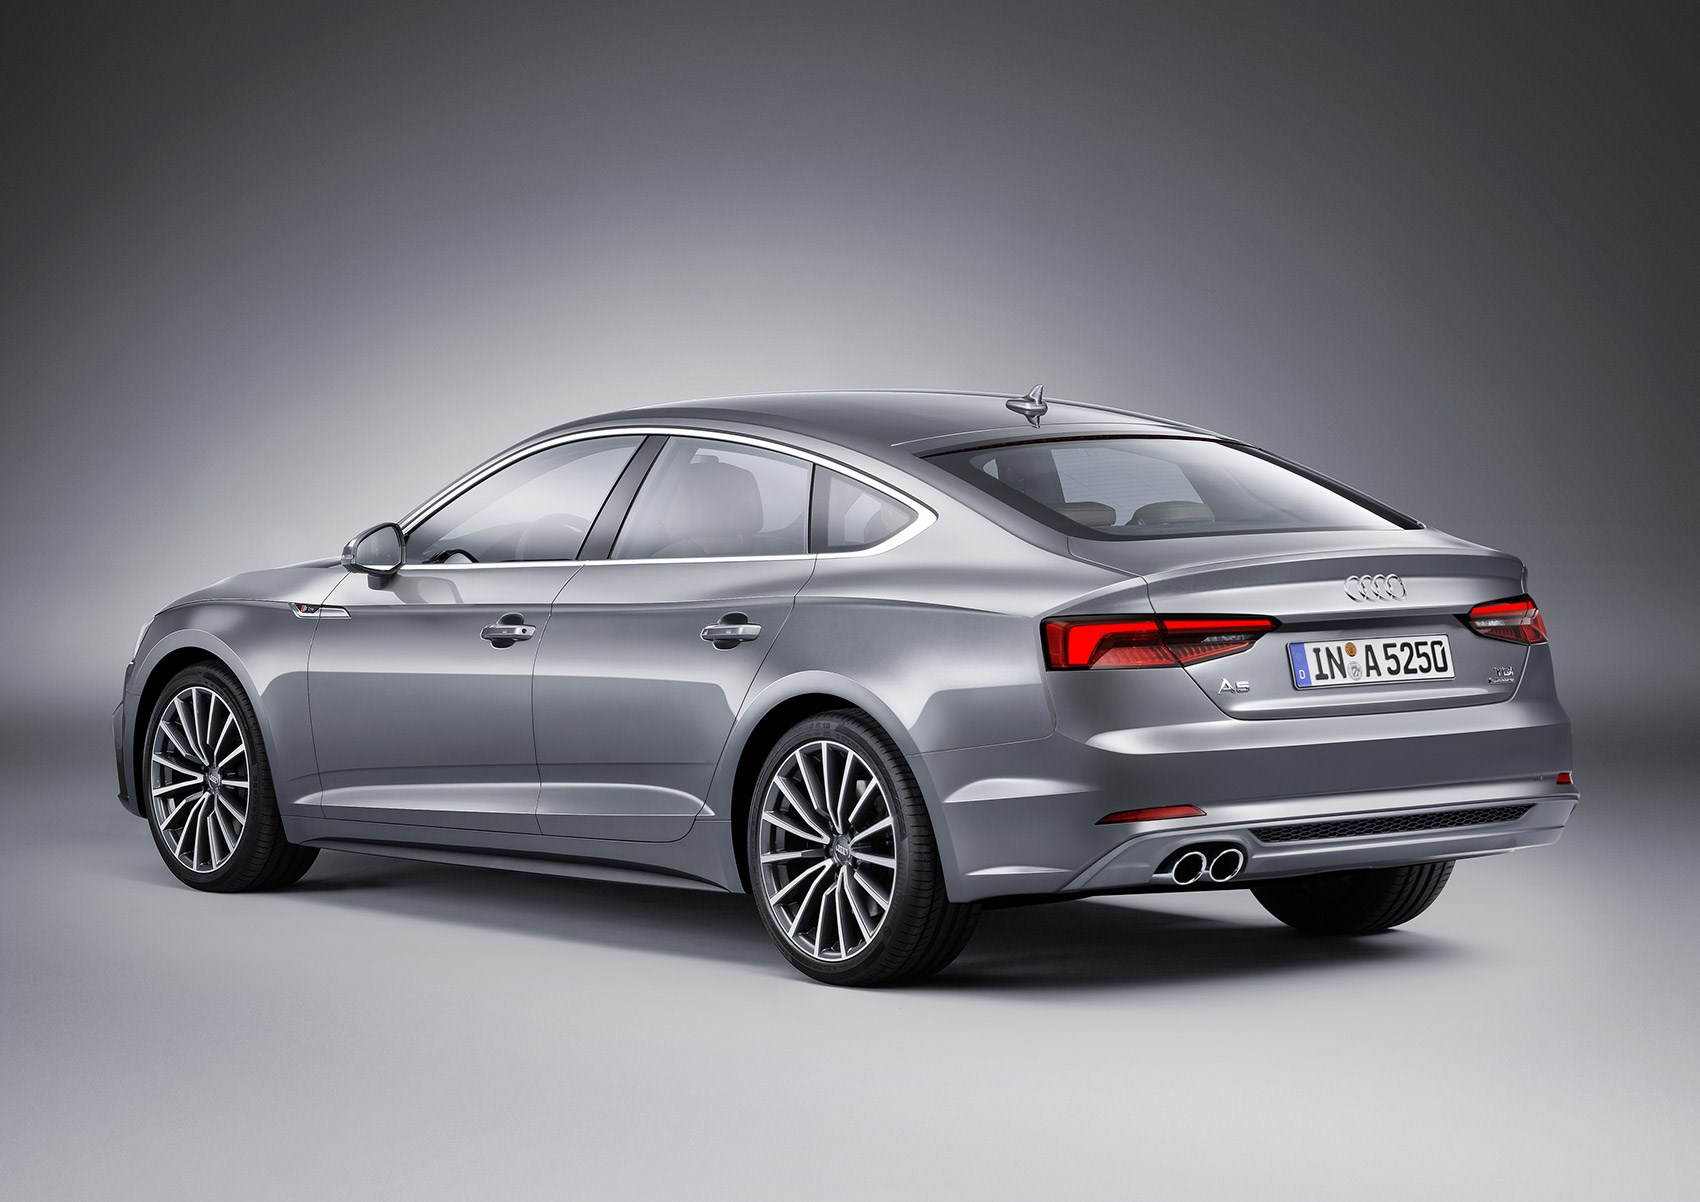 Audi s5 sportback 2017 review by car magazine - The New 2017 Audi A5 Sportback